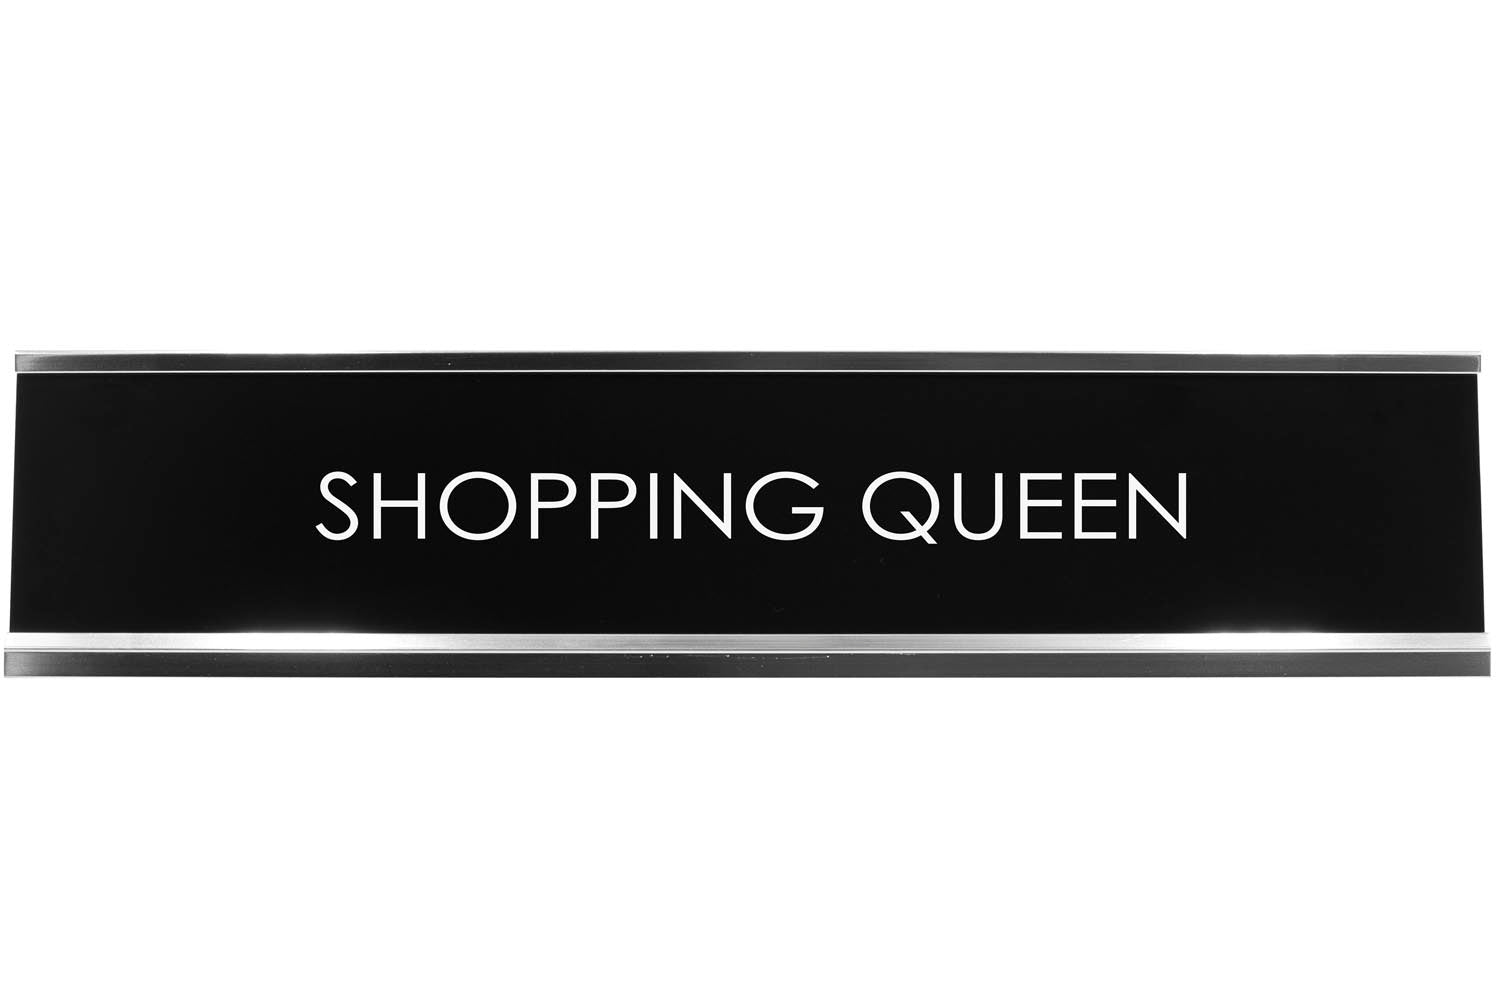 Shopping Queen Novelty Desk Sign